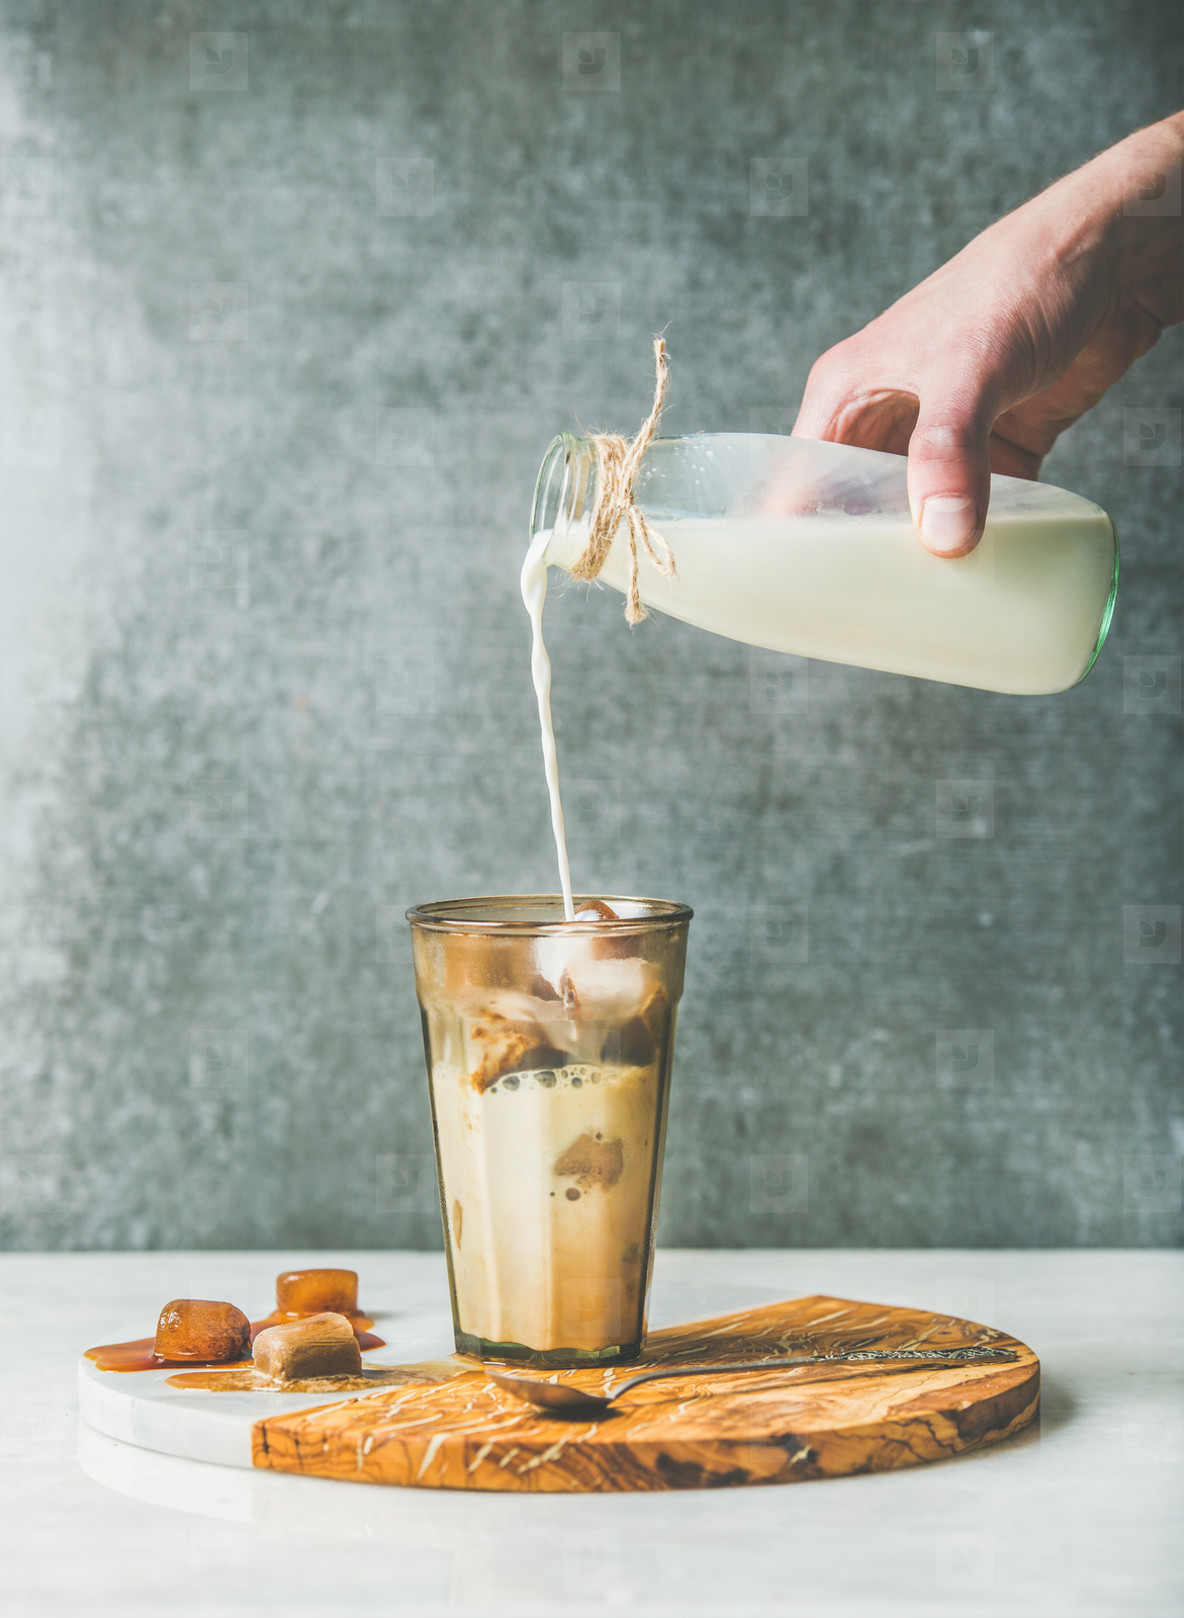 Man s hand pouring milk to Iced latte caramel coffee cocktail